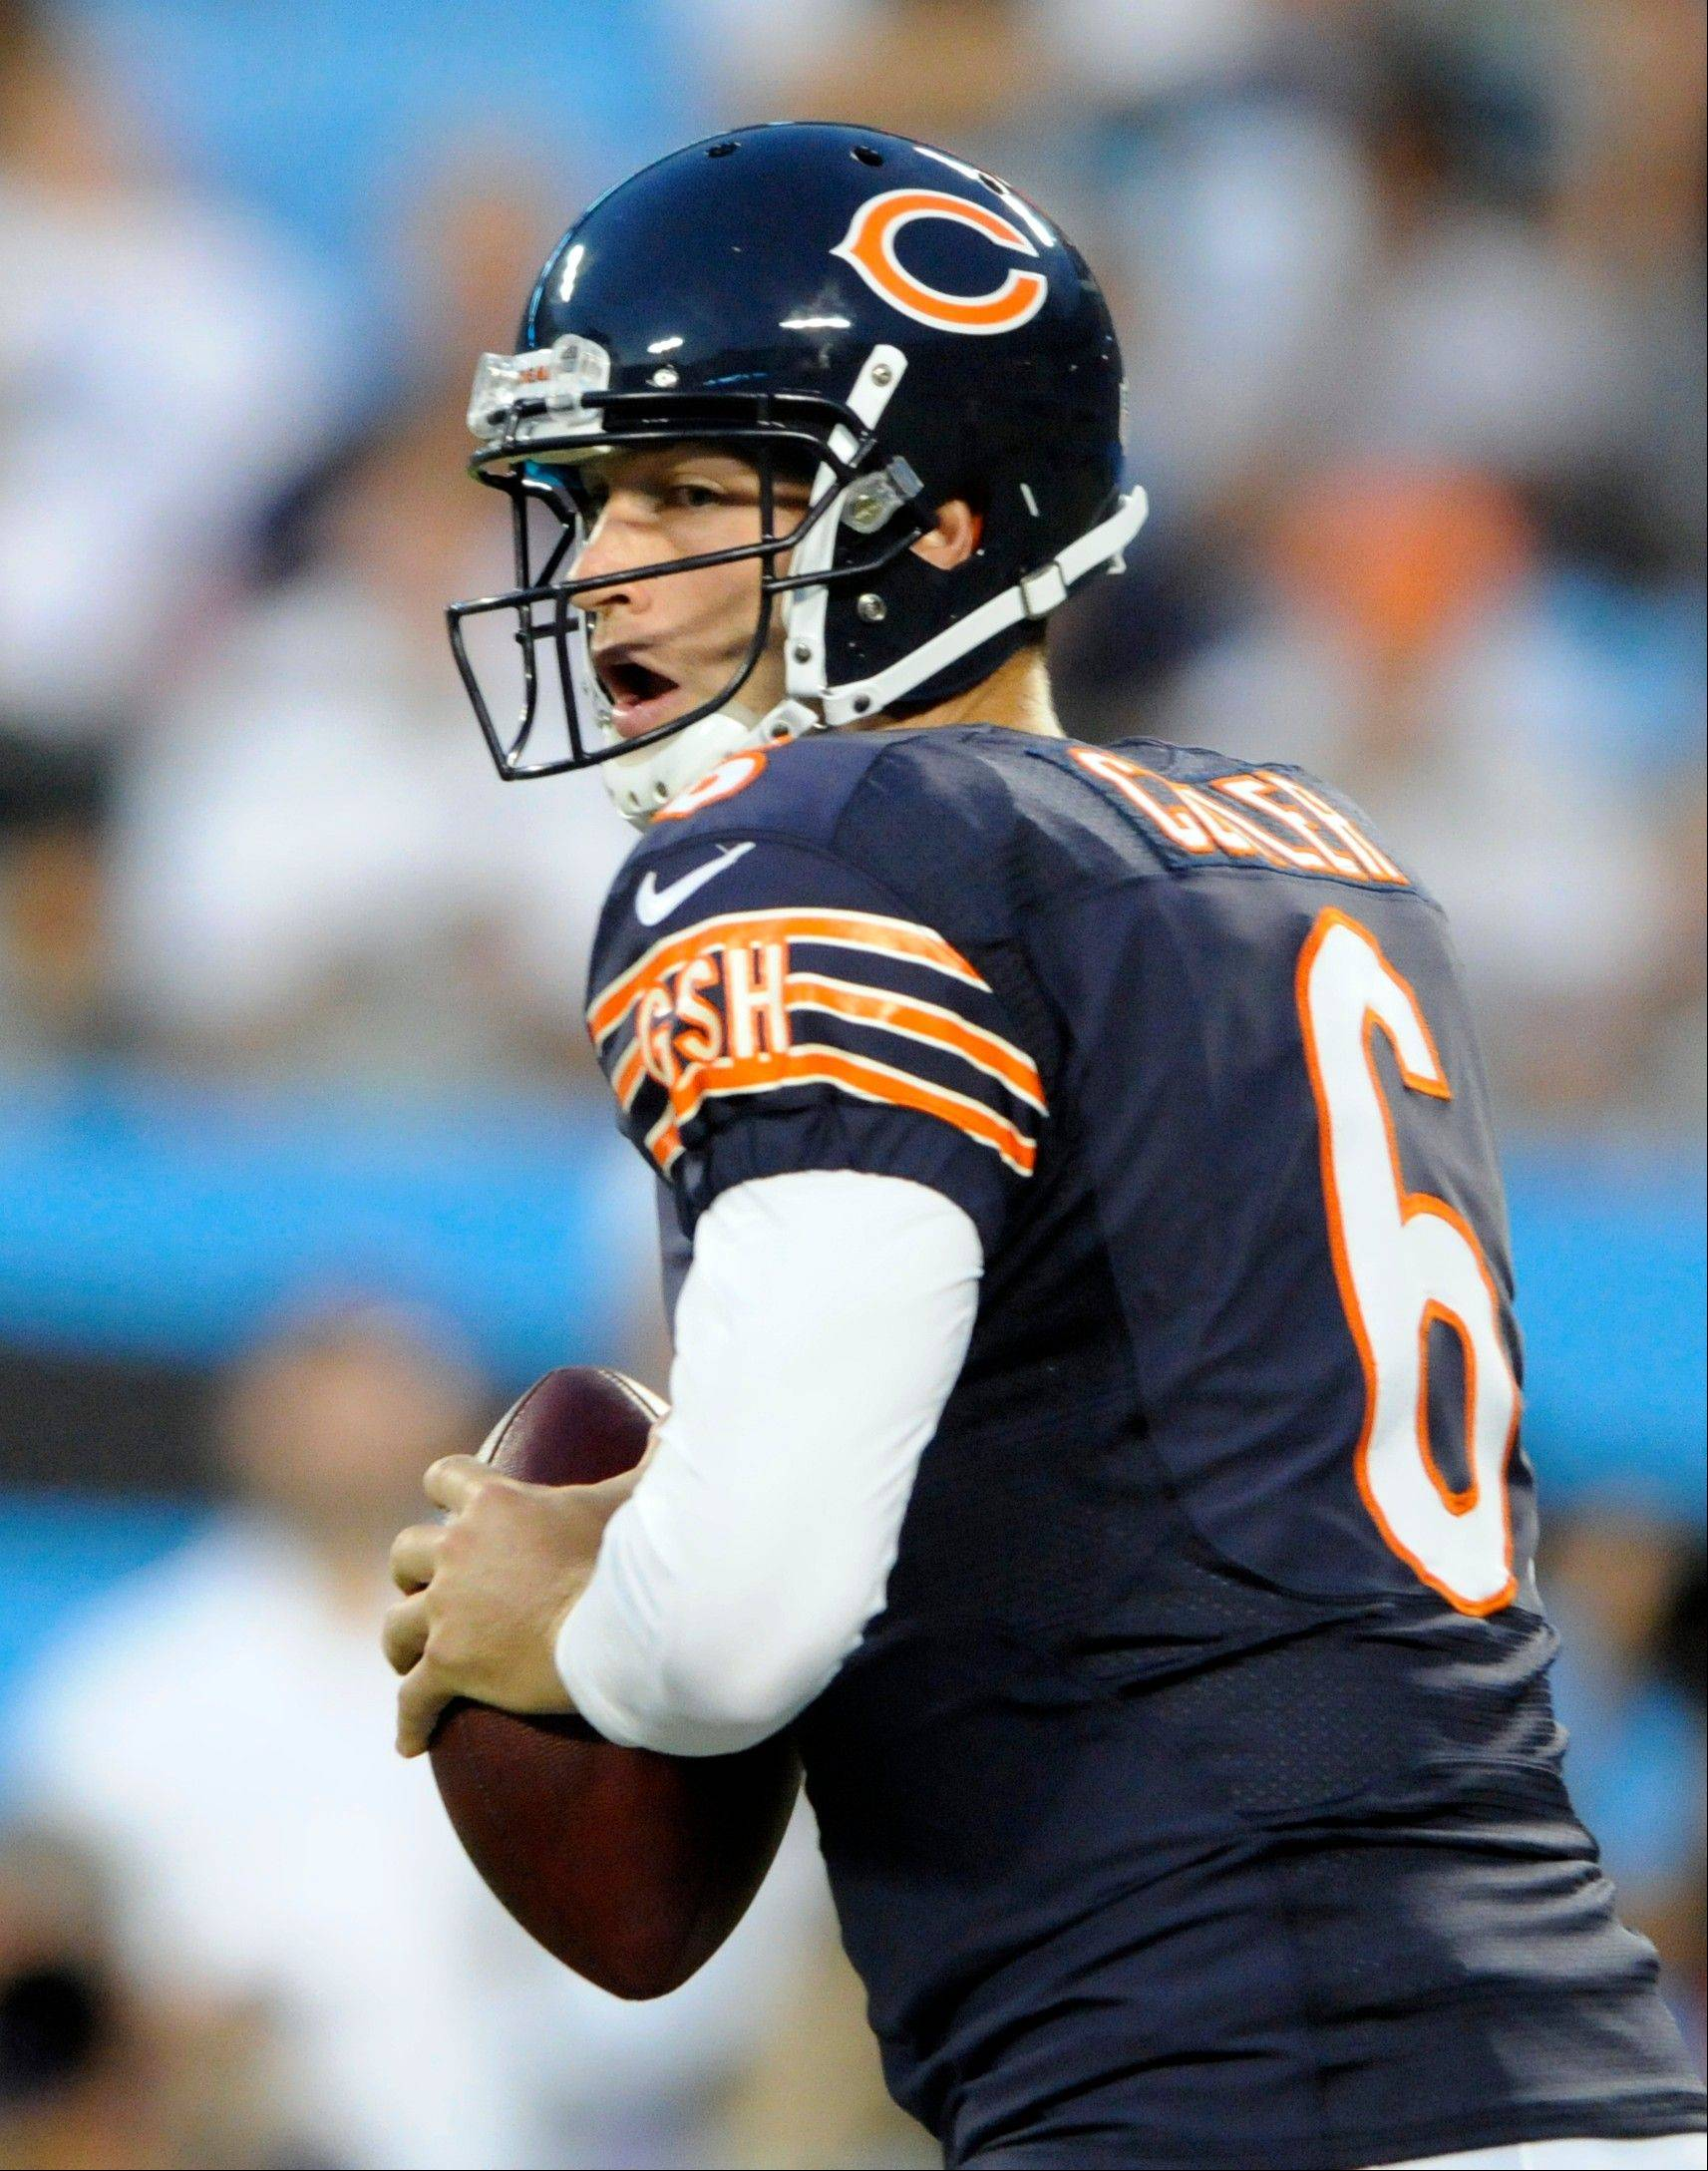 Chicago Bears quarterback Jay Cutler looks to pass against the Carolina Panthers during the first half of a preseason NFL football game in Charlotte, N.C., Friday, Aug. 9, 2013.